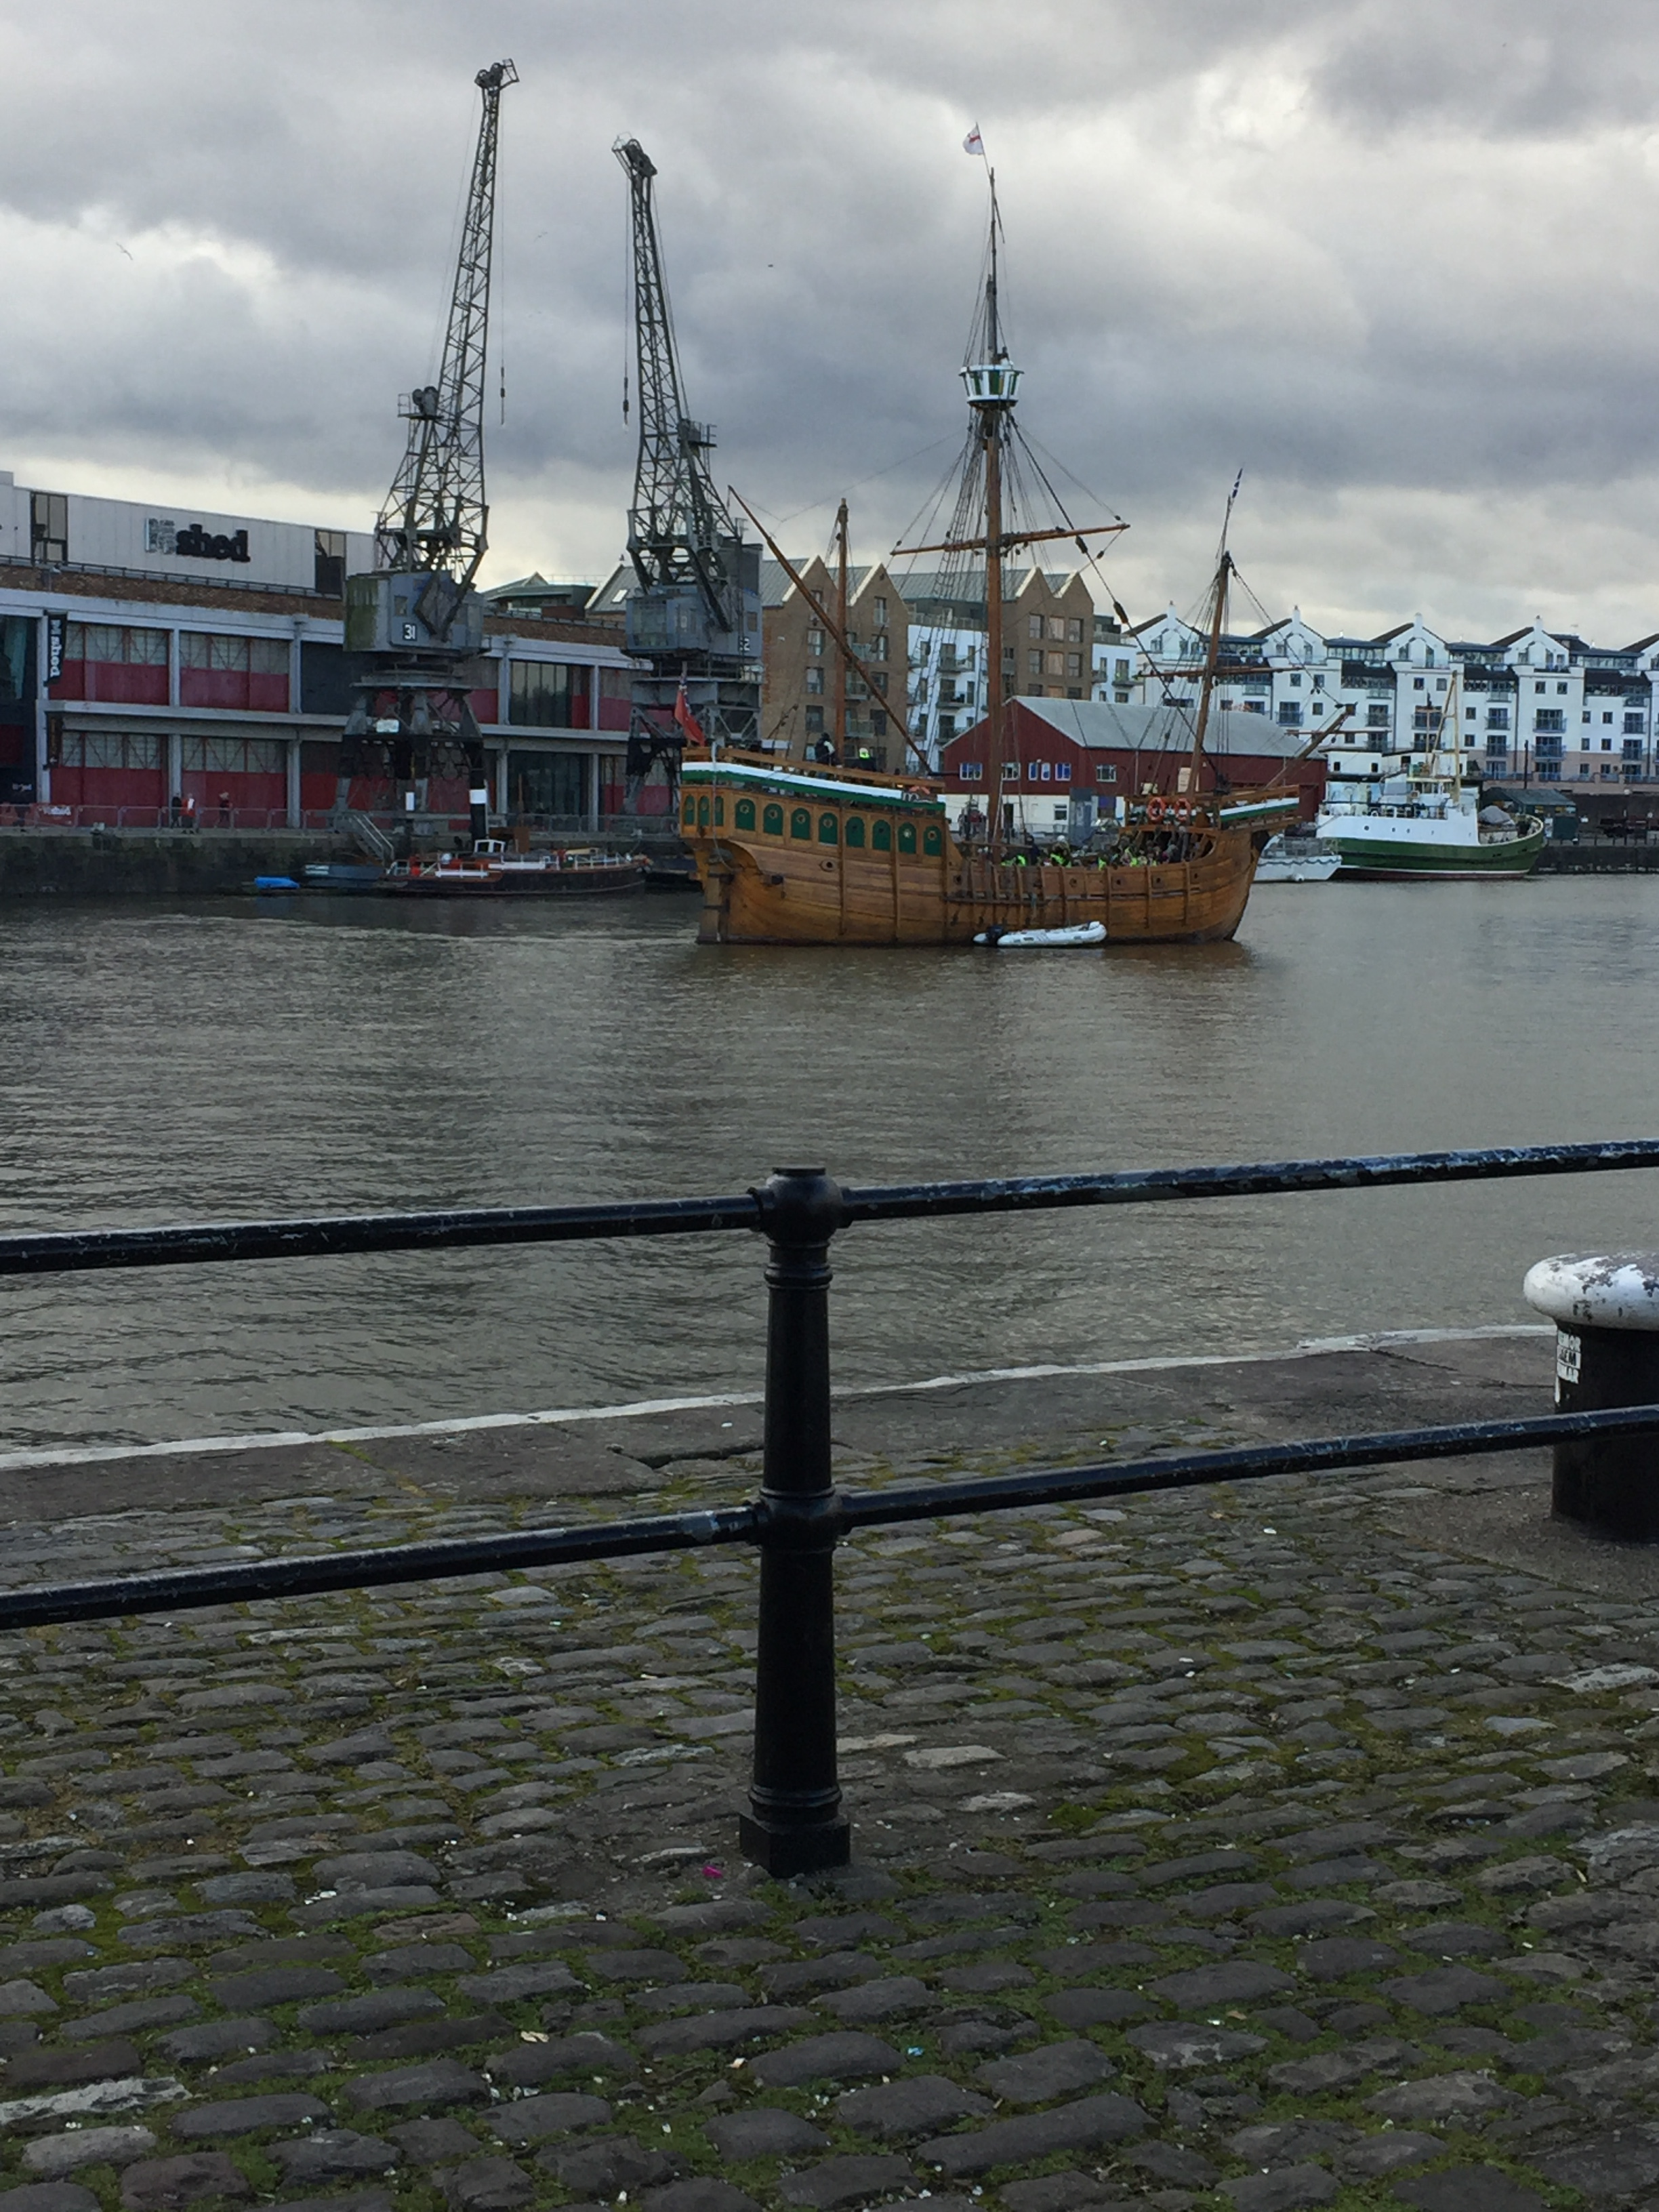 A replica of the ship that John Cabot sailed across the Atlantic.